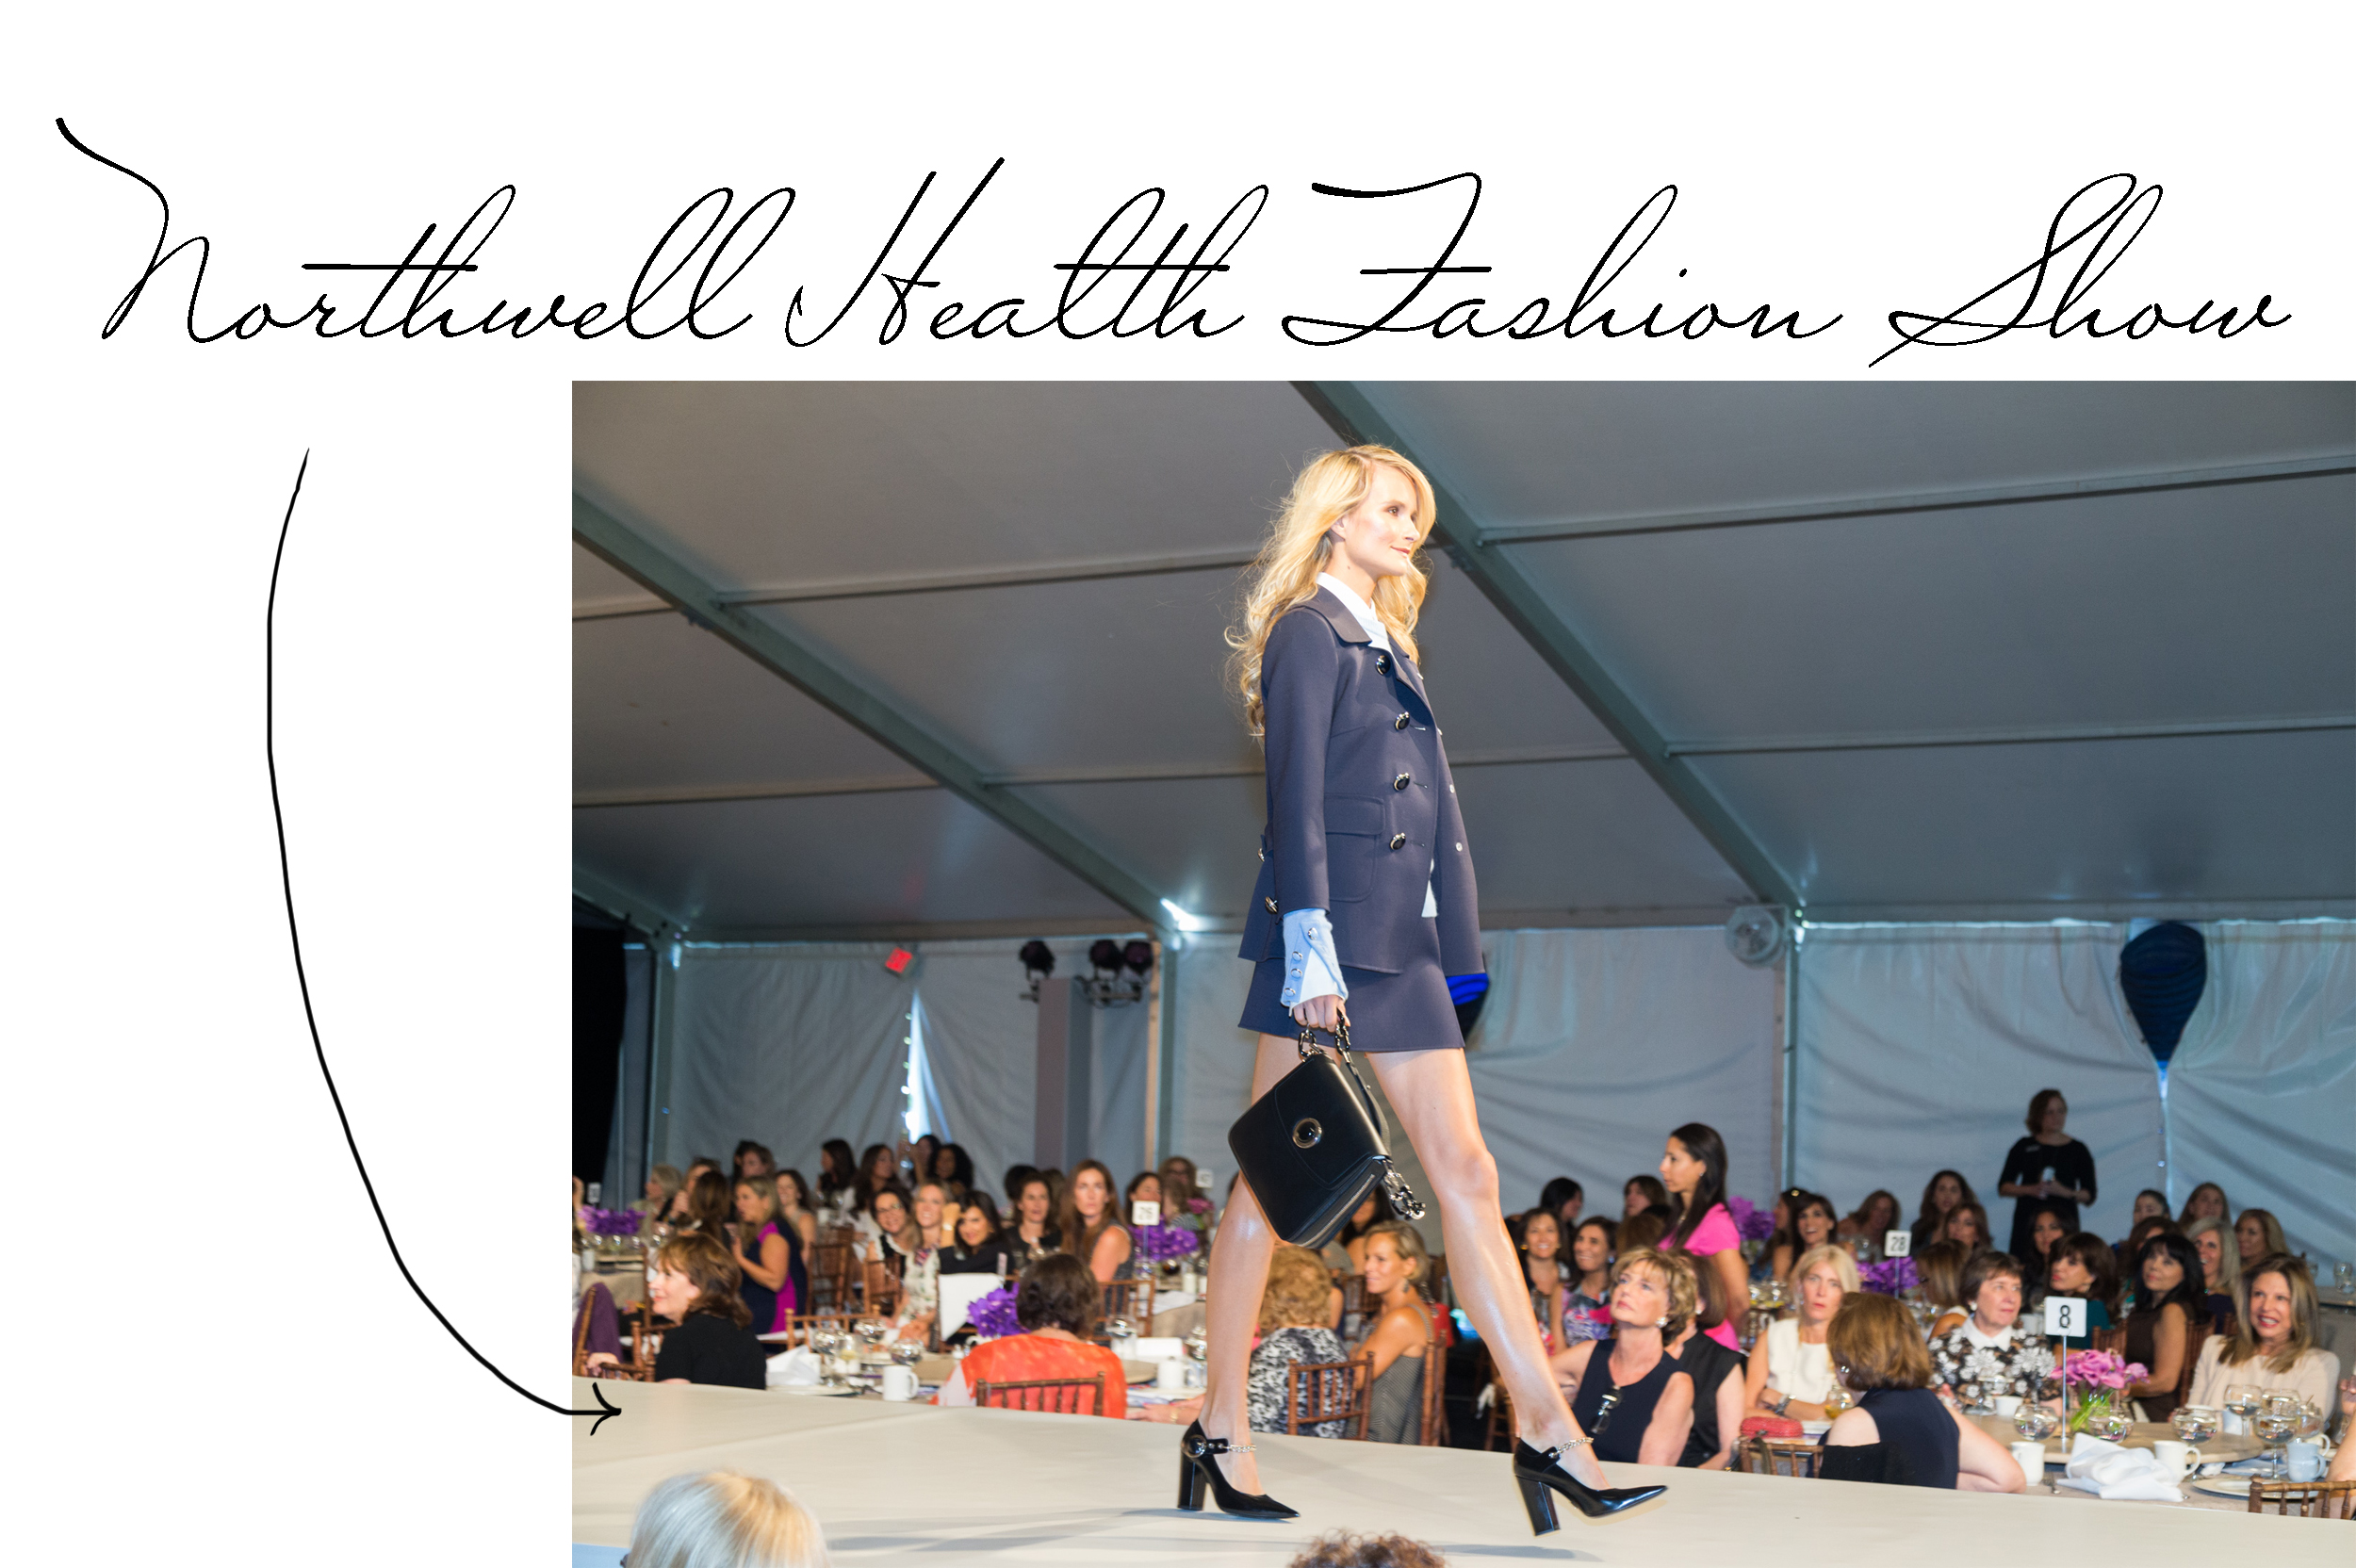 northwell fashion show-1.jpg